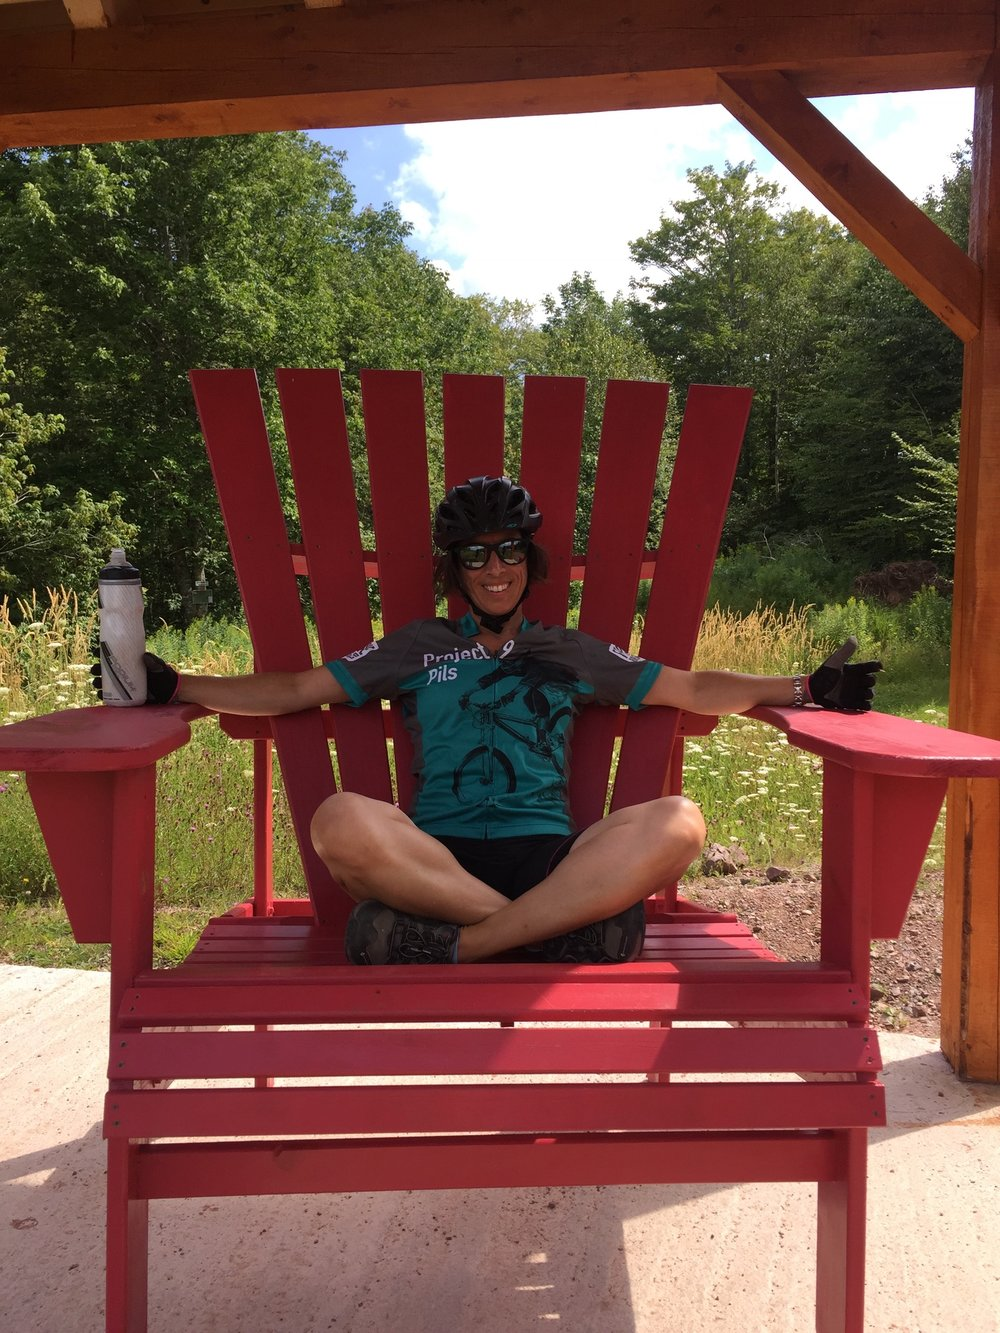 Resting in the massive red chairs at Keppoch after a fun pedal around their park.